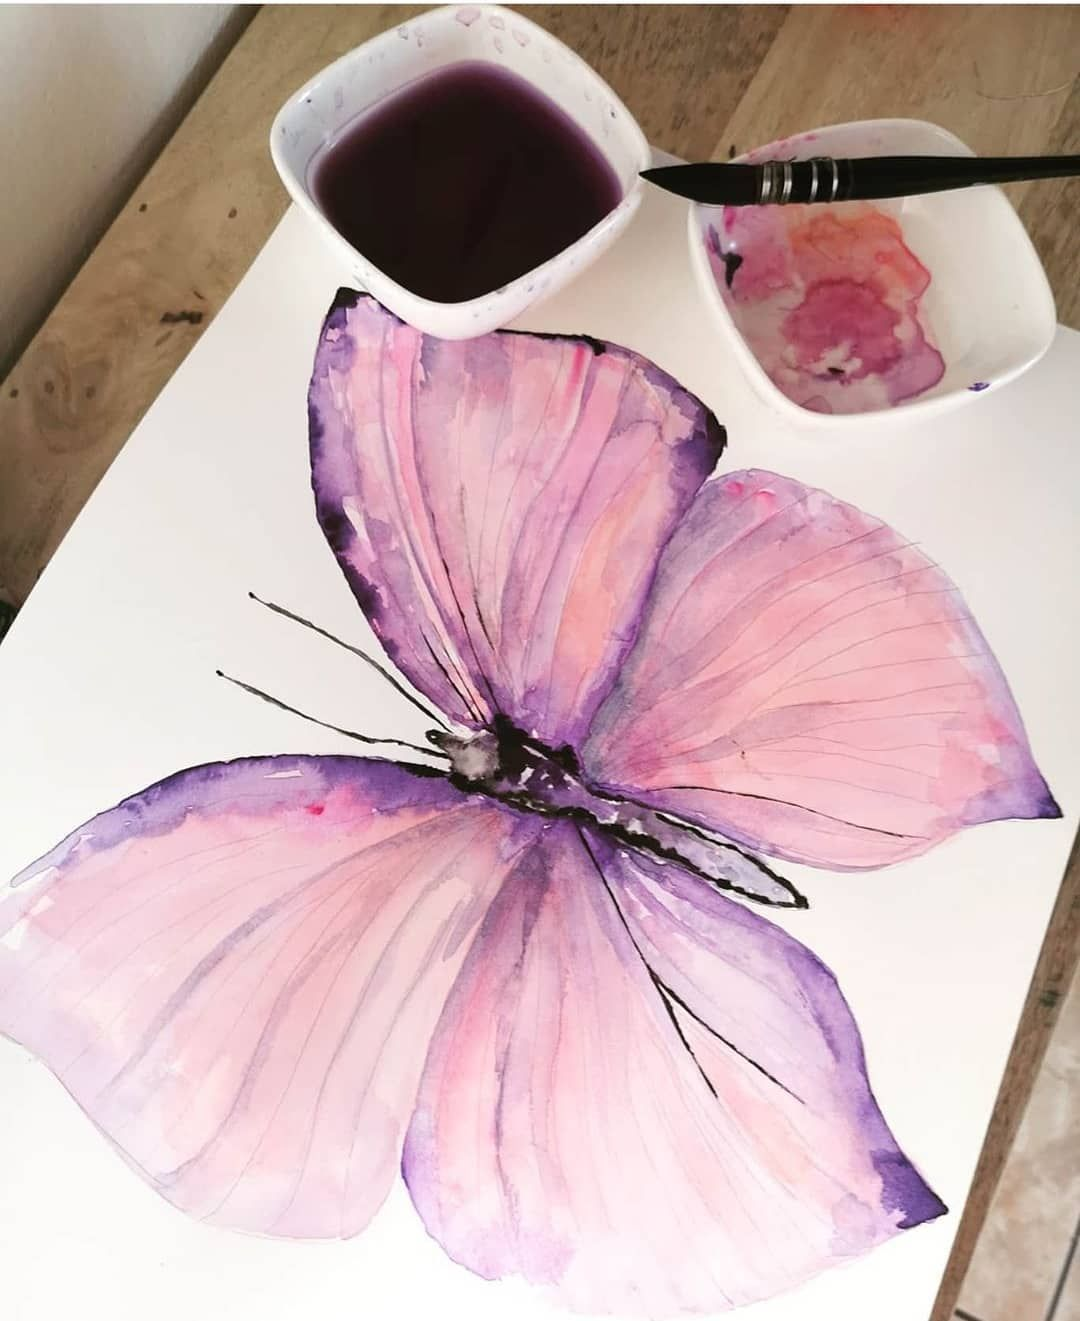 #aquarelle #peinture #watercolortime #watercoloring #aquarellepainting #instaaquarelle #aquarelletime #aquarelledujour #diy #bookwatercolor #watercolortravel #watercolordiary